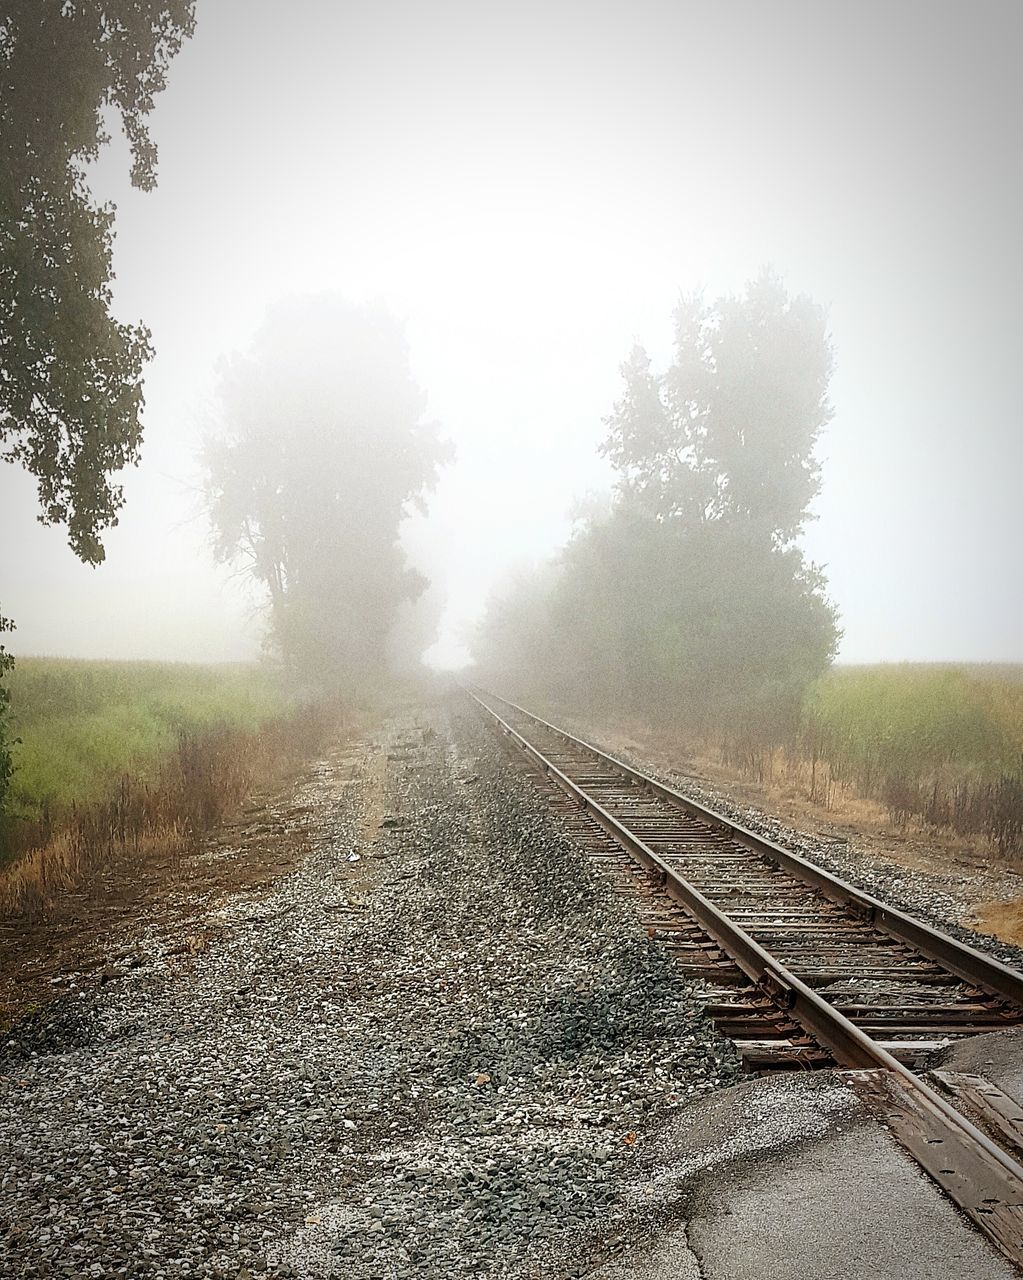 railroad track, fog, tree, rail transportation, transportation, the way forward, foggy, day, nature, weather, landscape, no people, railway track, outdoors, beauty in nature, mist, grass, scenics, sky